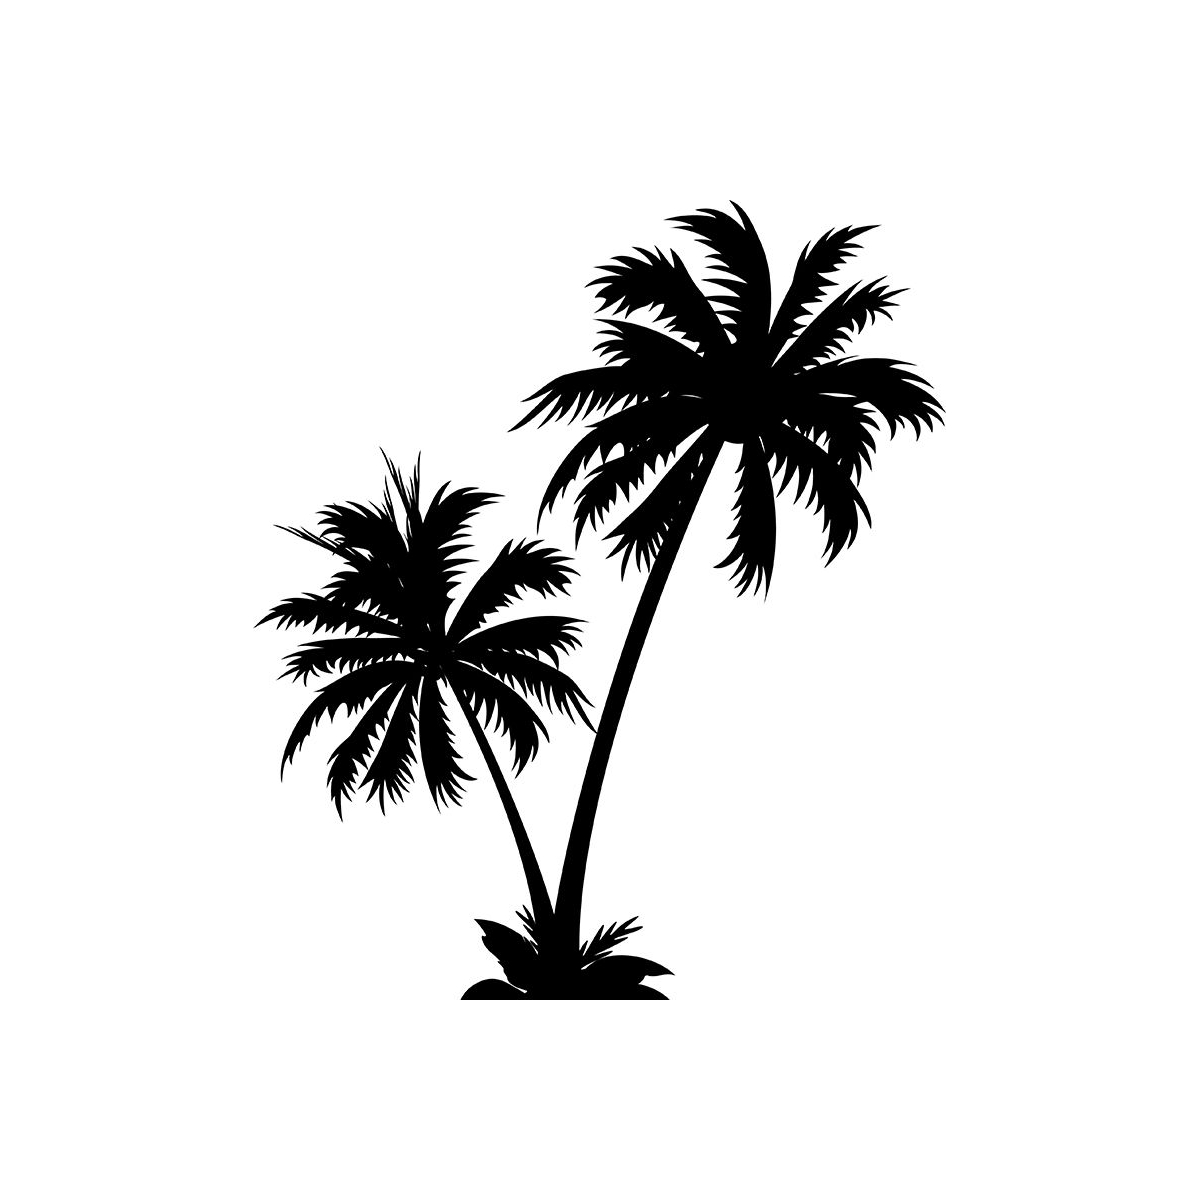 Los Angeles clipart Los Angeles Skyline Silhouette Palm Trees #7